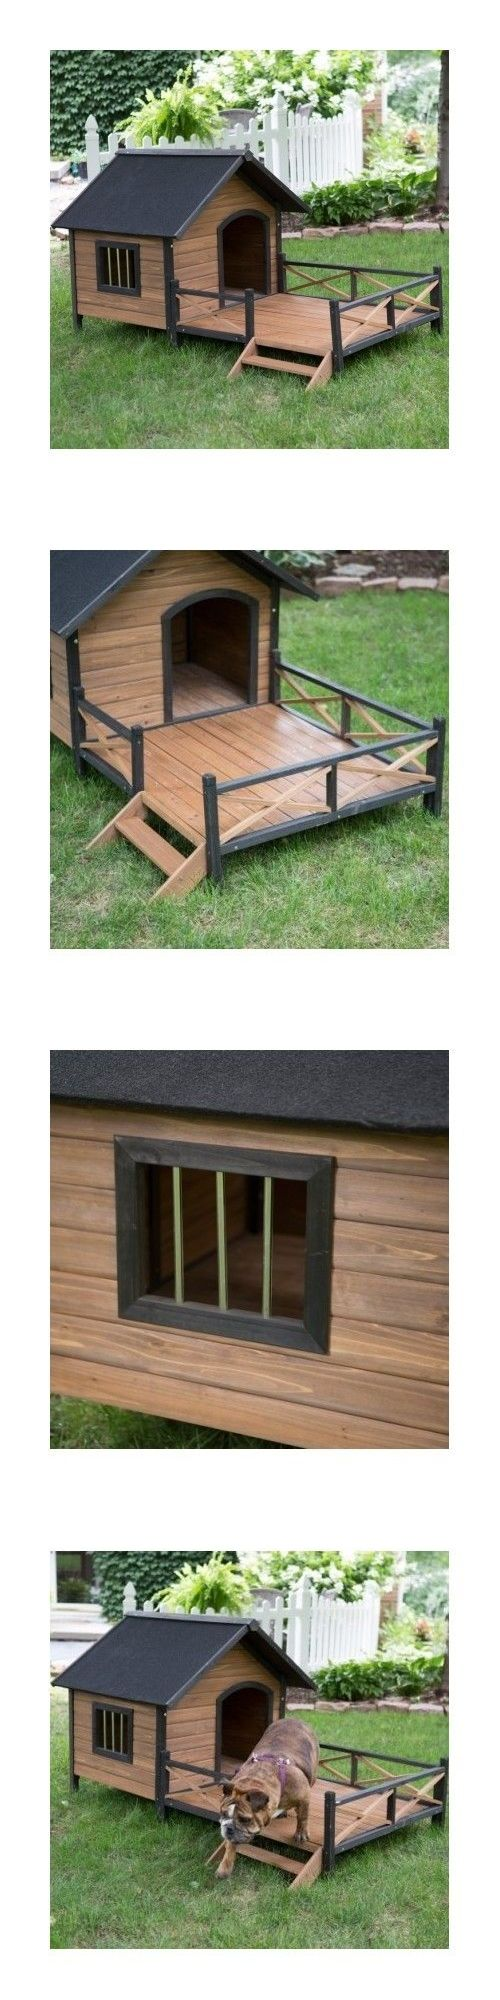 Rubber mats dog run - Dog Houses 108884 Dog Houses For Large Dogs Xl Wood Outdoor Kennel Pet Deck Raised